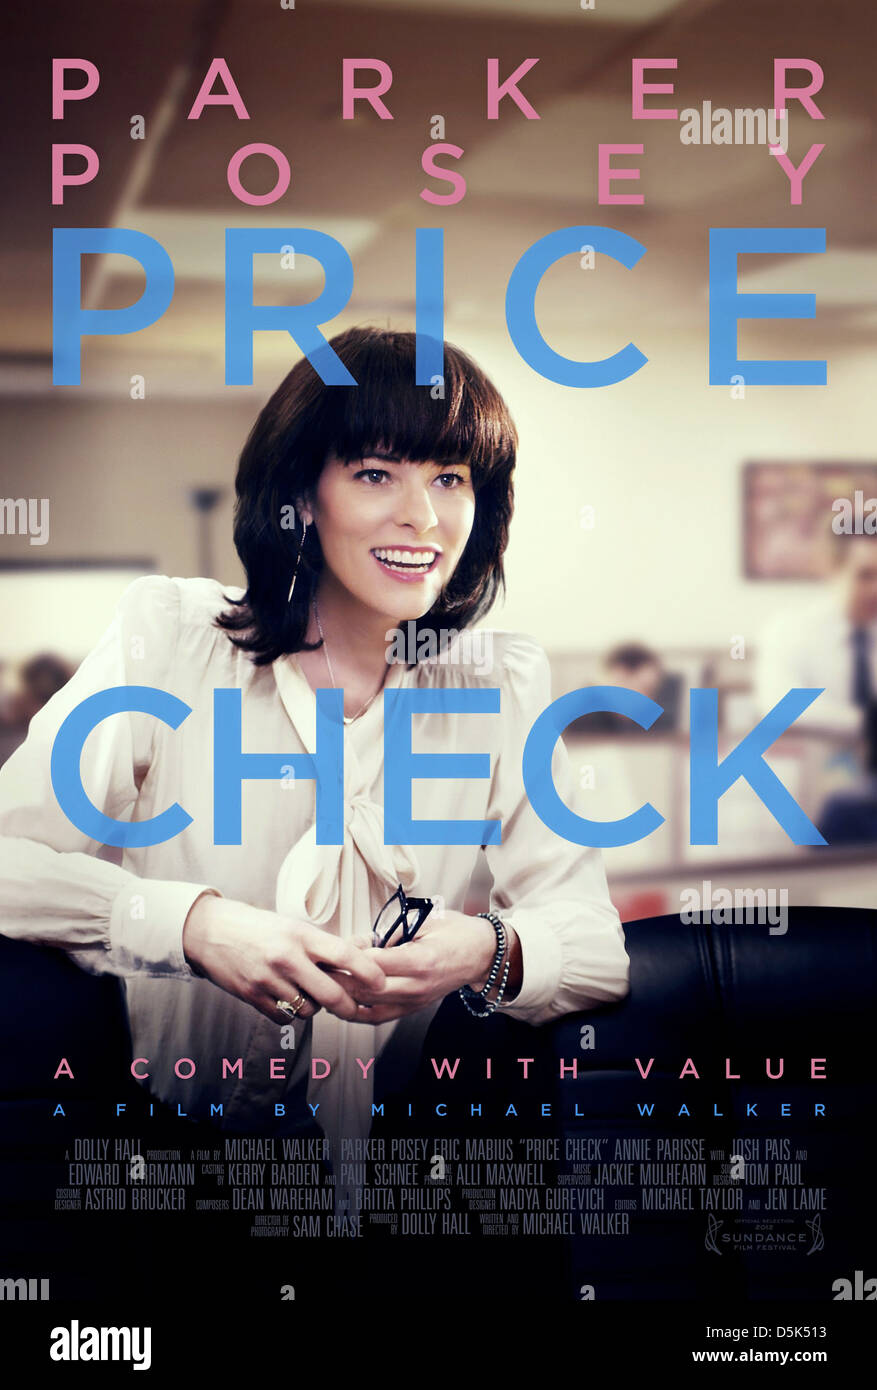 PARKER POSEY POSTER PRICE CHECK (2012) - Stock Image